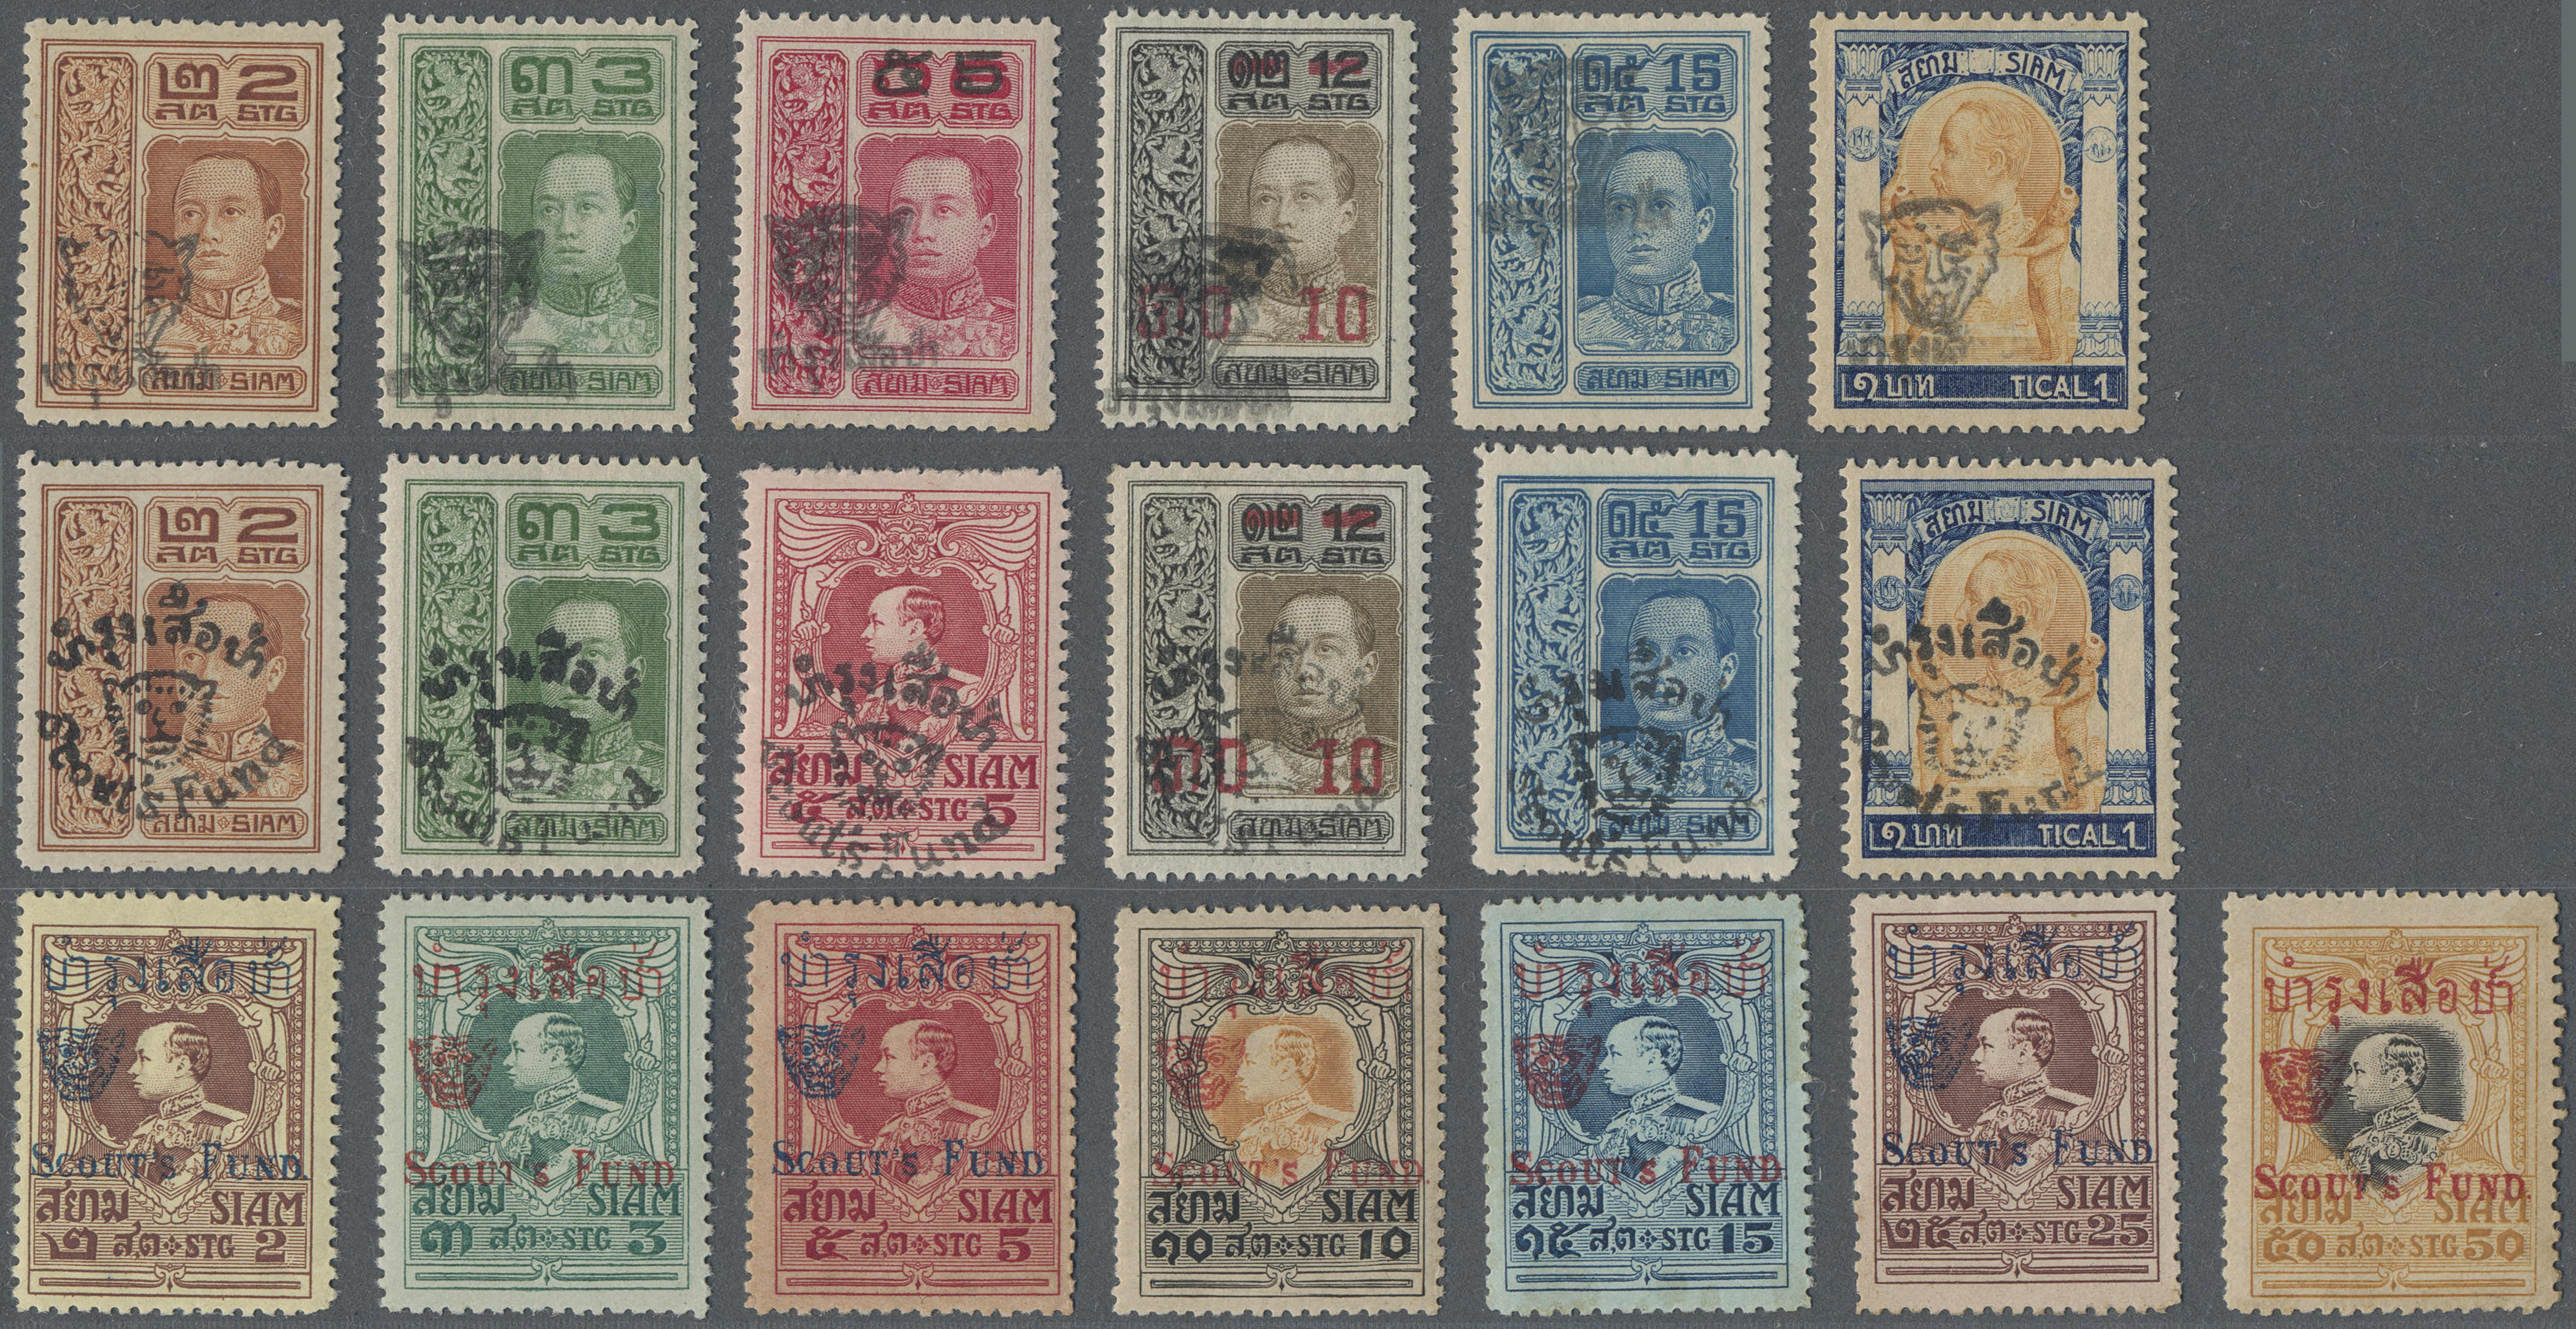 Lot 38213 - thailand  -  Auktionshaus Christoph Gärtner GmbH & Co. KG Sale #43 Collection Peter Zgonc - German Occupations WWII | Day 7